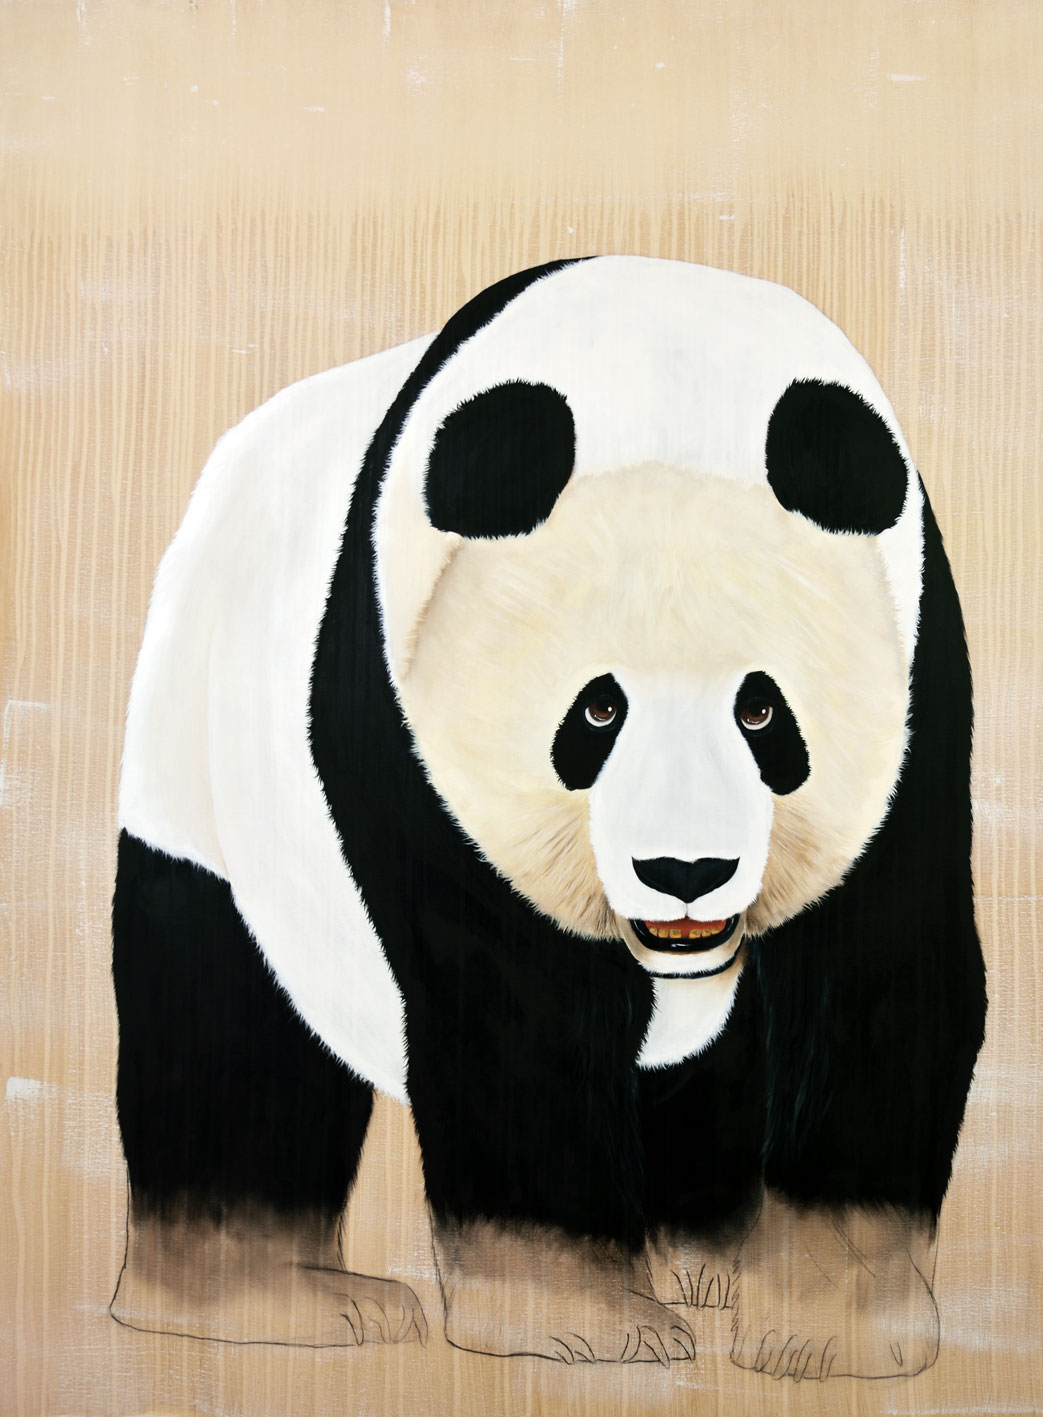 AILUPURODA-MELANO-LEUCA panda-giant-ailupuroda-melano-leuca-delete-threatened-endangered-extinction Thierry Bisch painter animals painting art decoration hotel design interior luxury nature biodiversity conservation